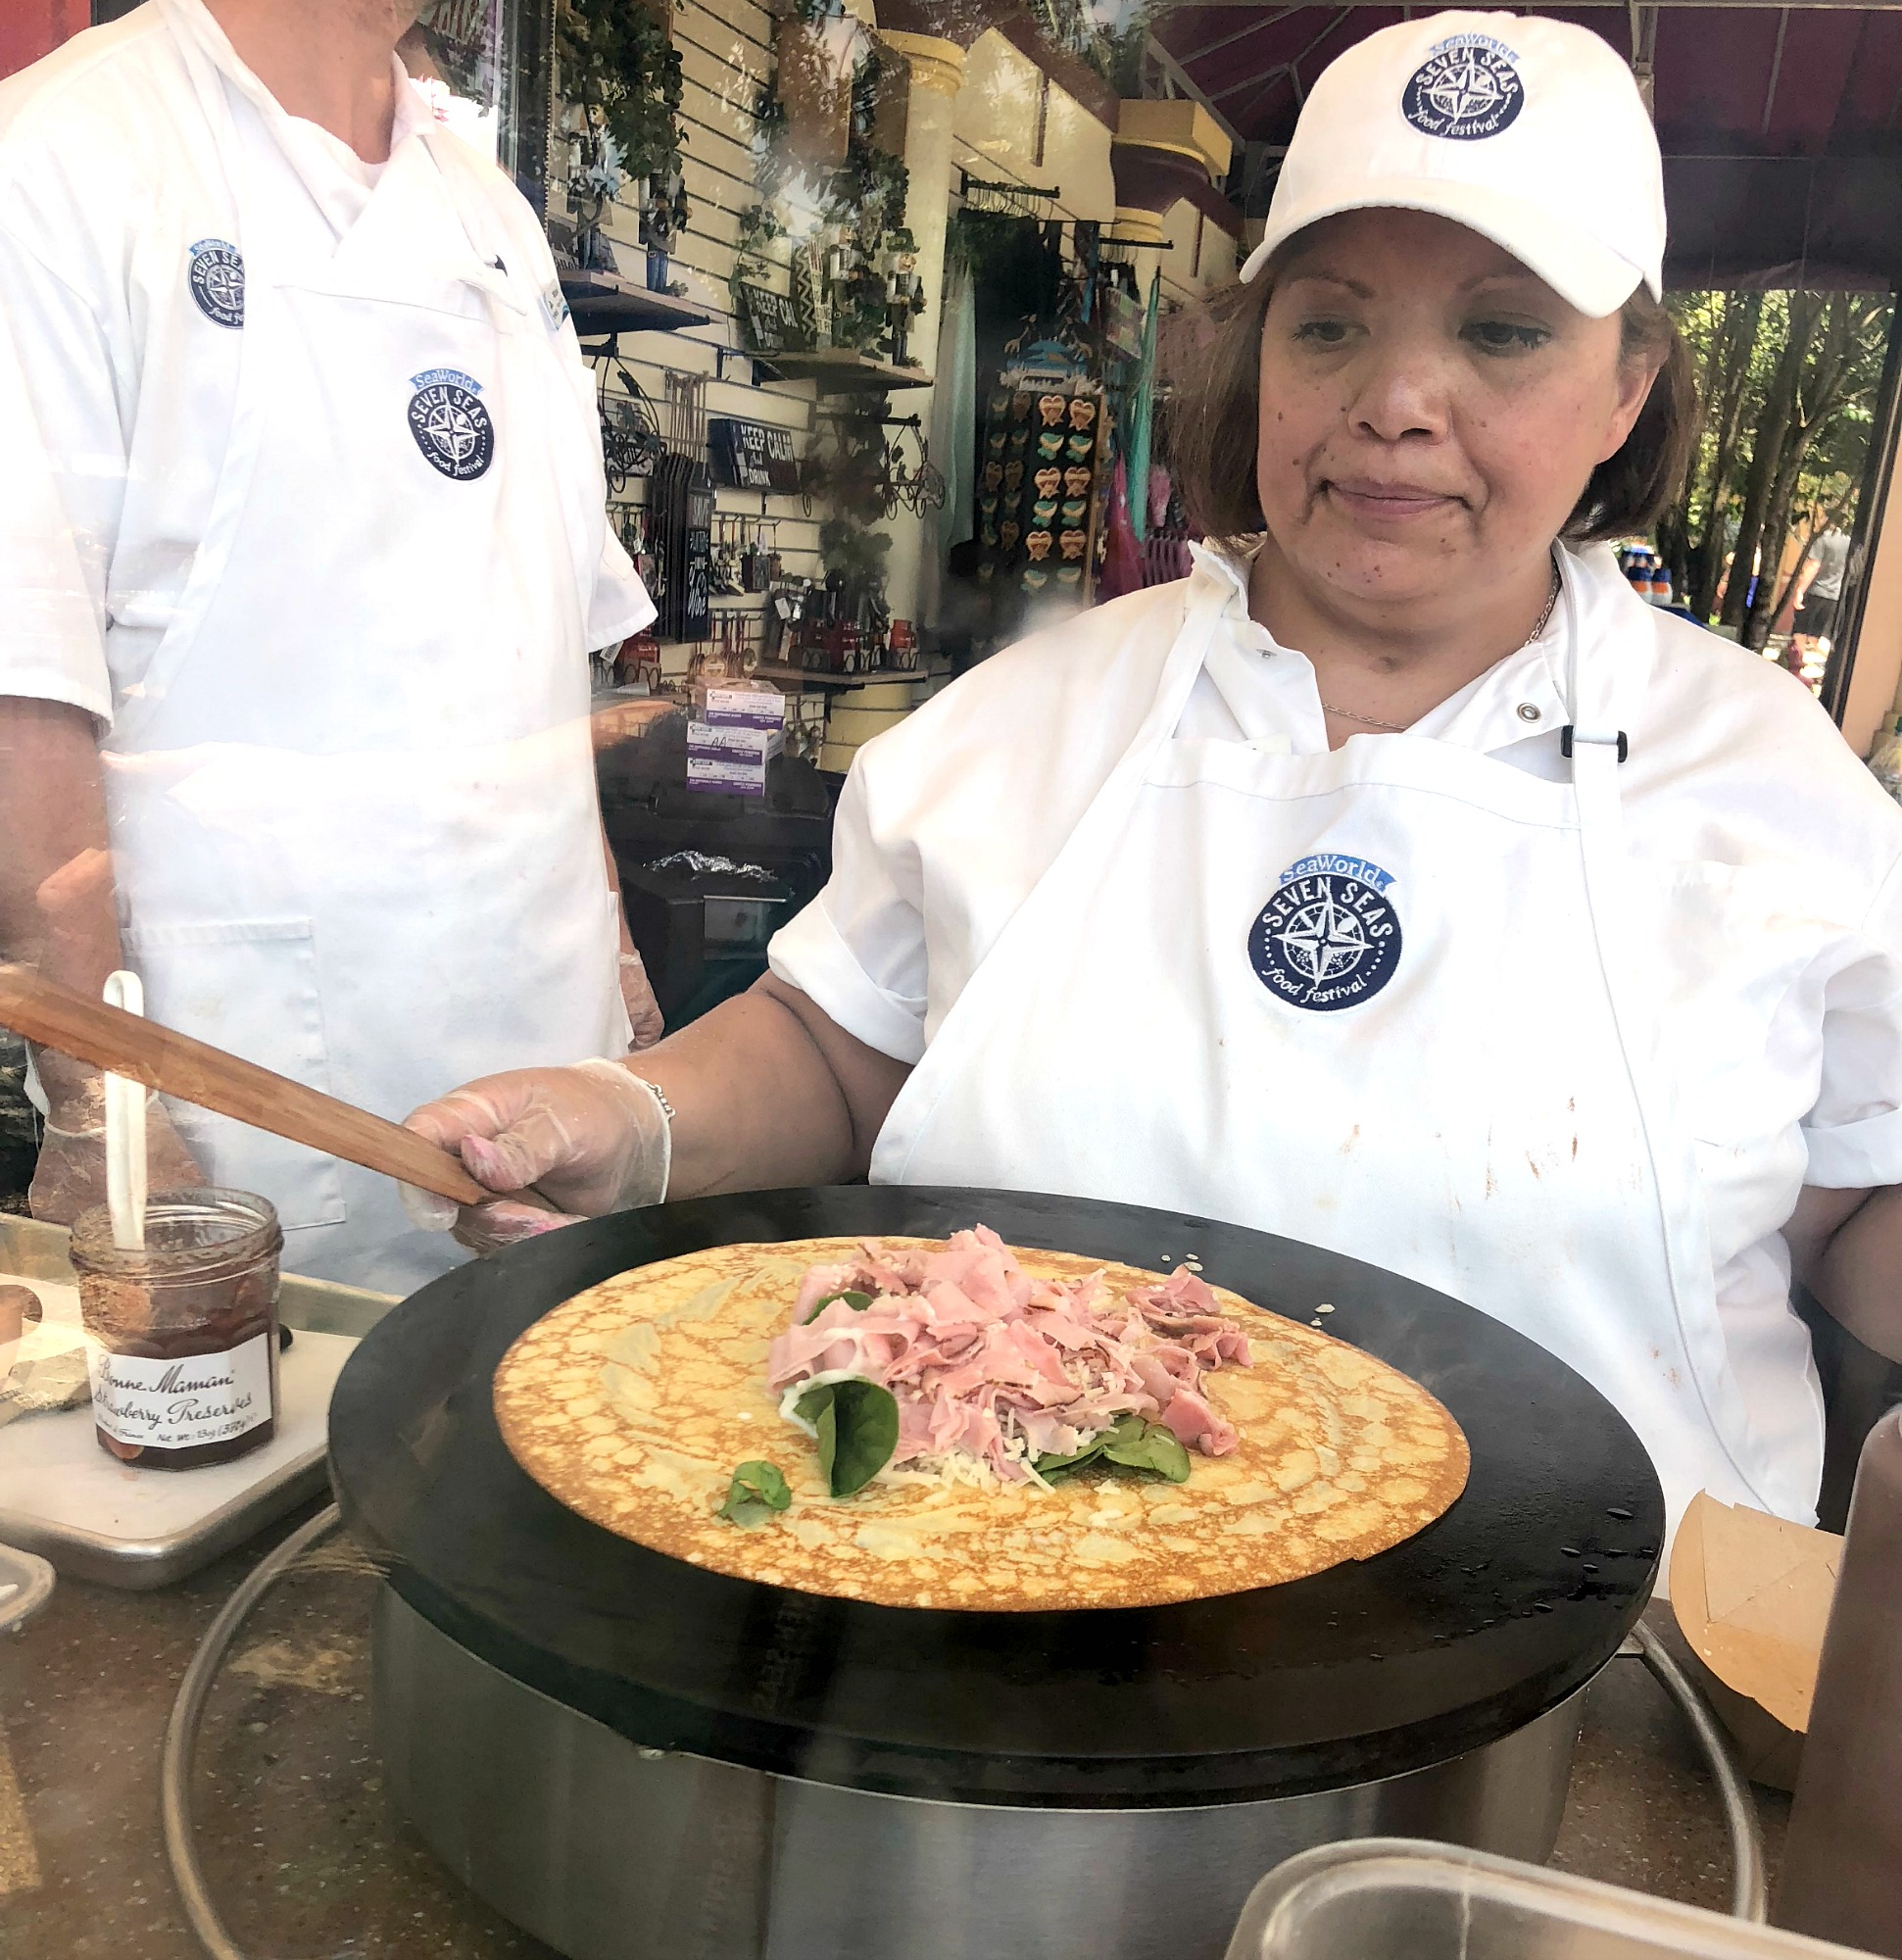 crepes-being-made-at-Seven-Seas-Food-Festival